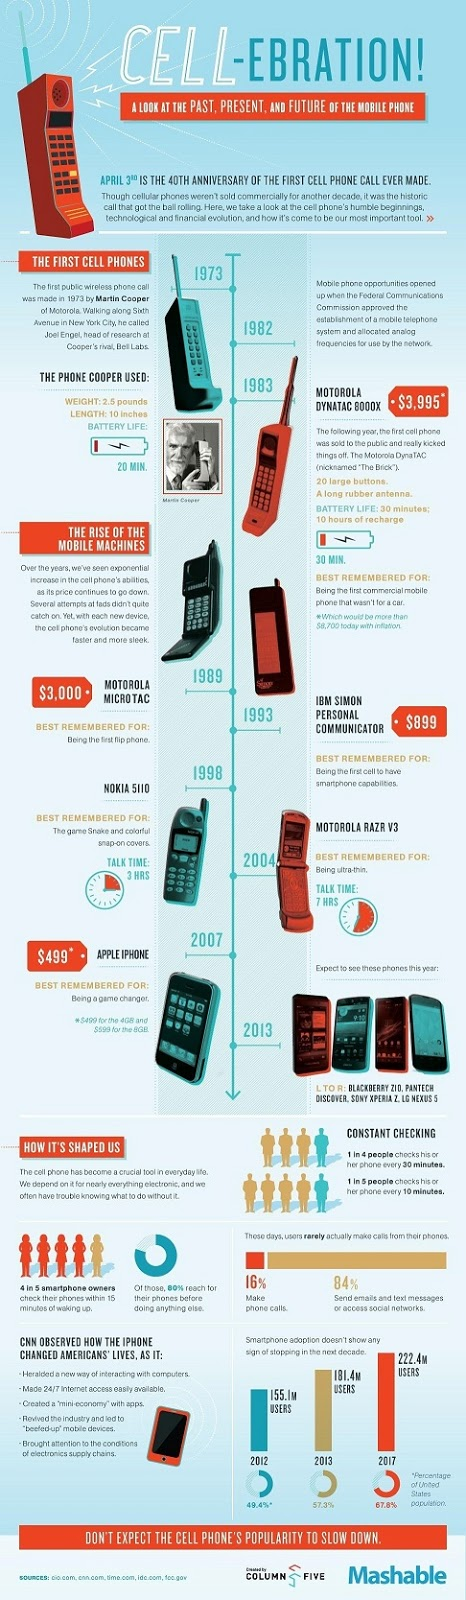 Tech News And Reviews About The History Of Mobile Phones